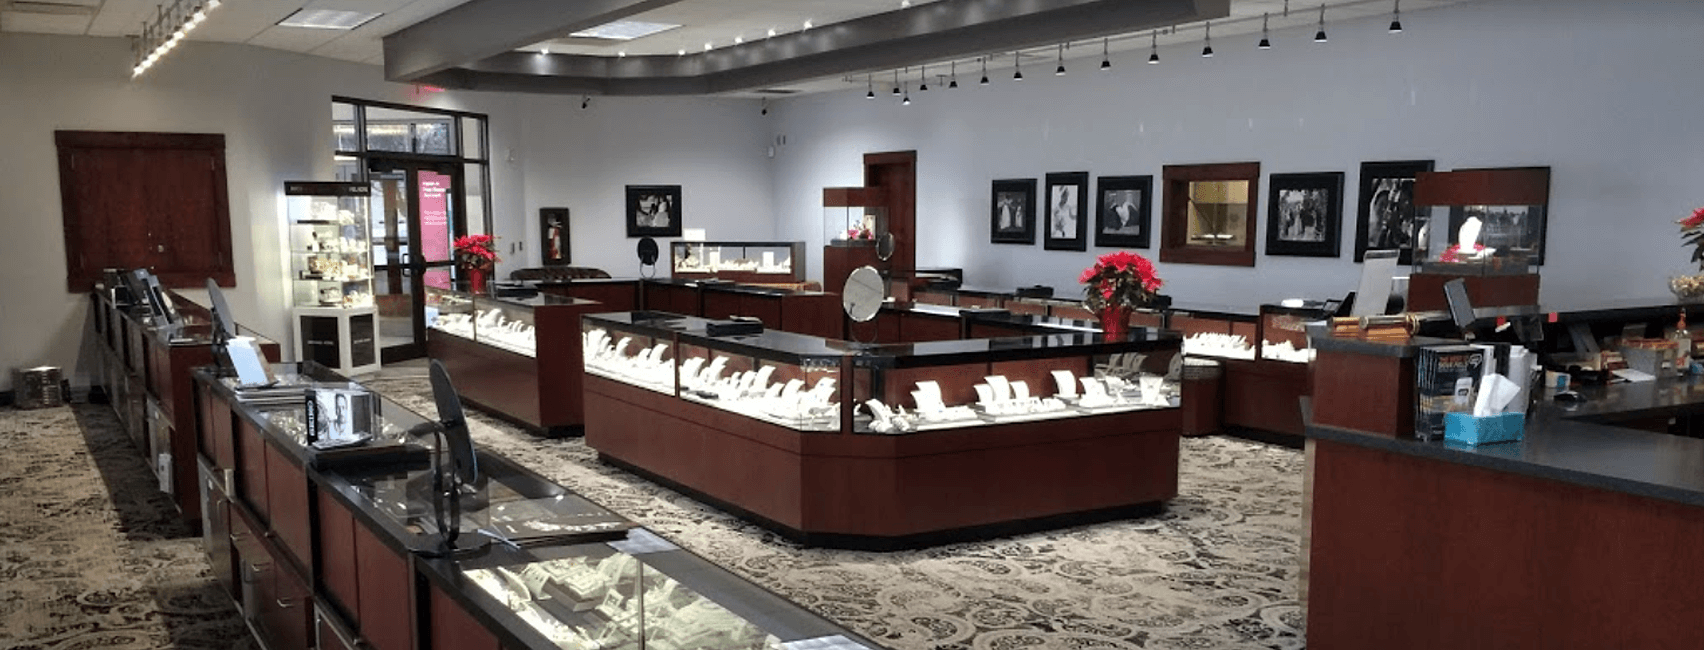 South Dakota's Top Rated Local® Jewelry Stores Award Winner: The Diamond Room by Spektor